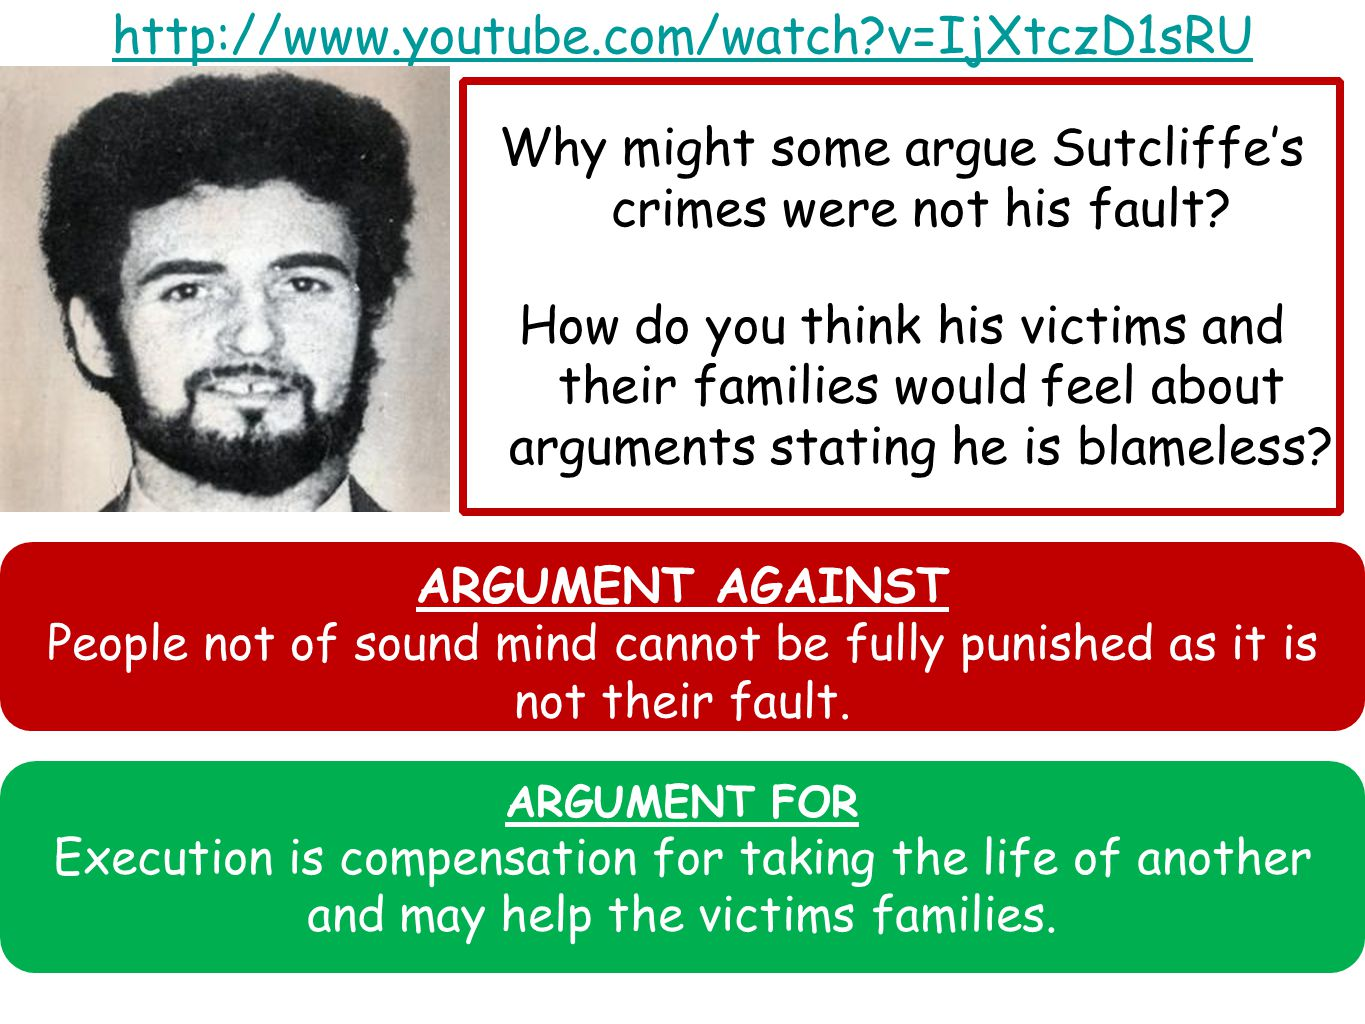 Why might some argue Sutcliffe's crimes were not his fault.